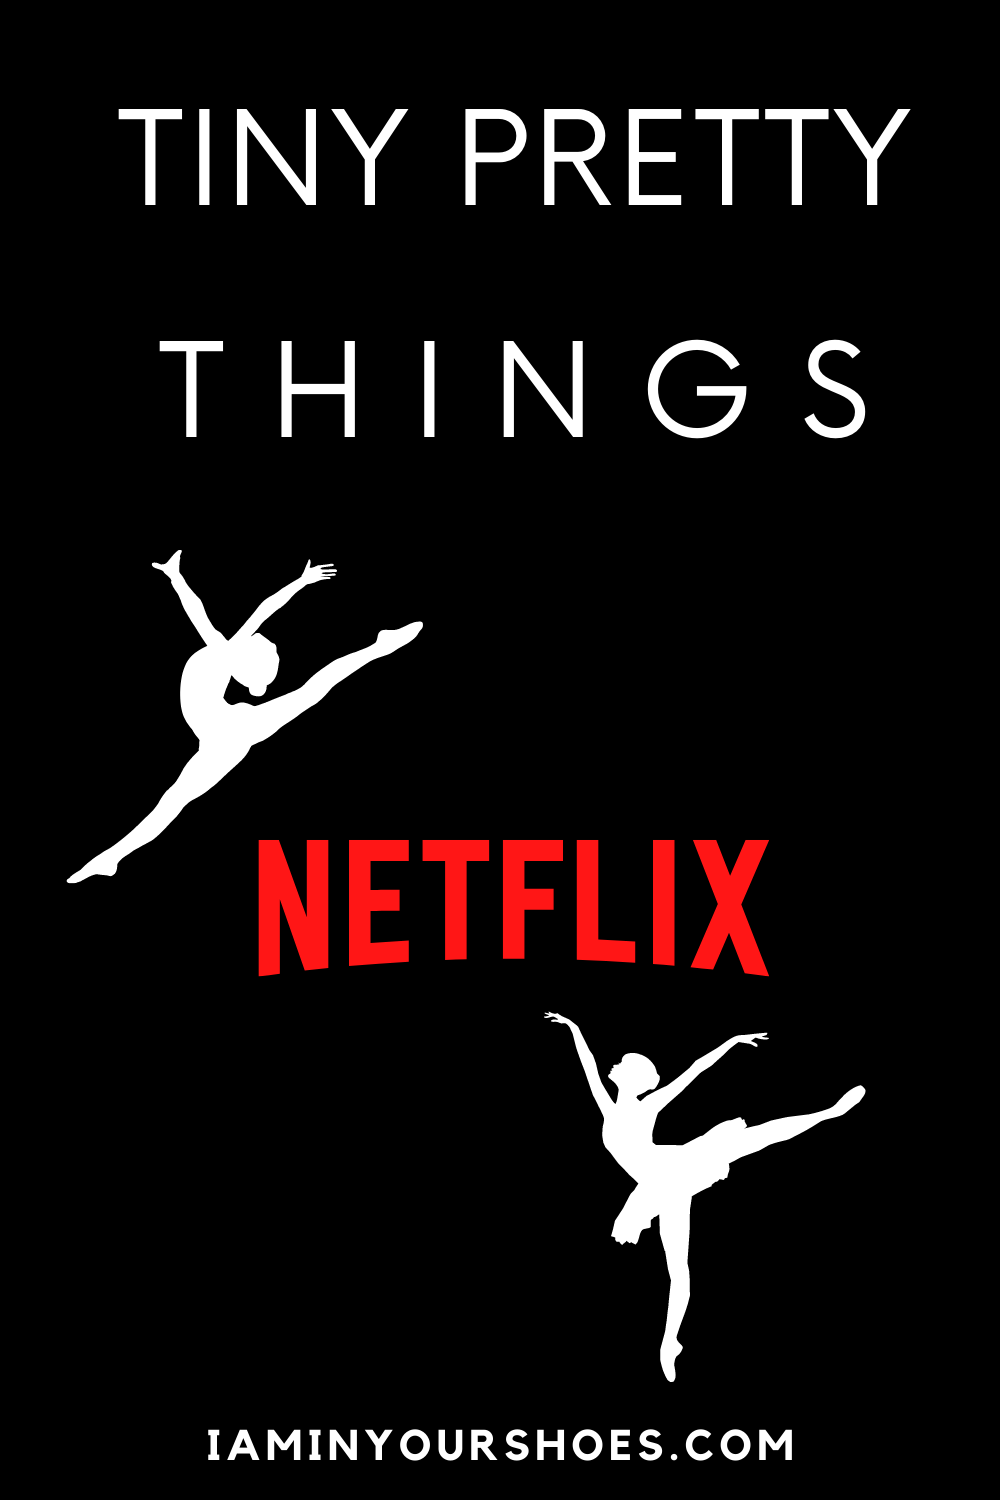 Tiny Pretty Things Netflix Review And Quotes Netflix Quotes Netflix Star Students